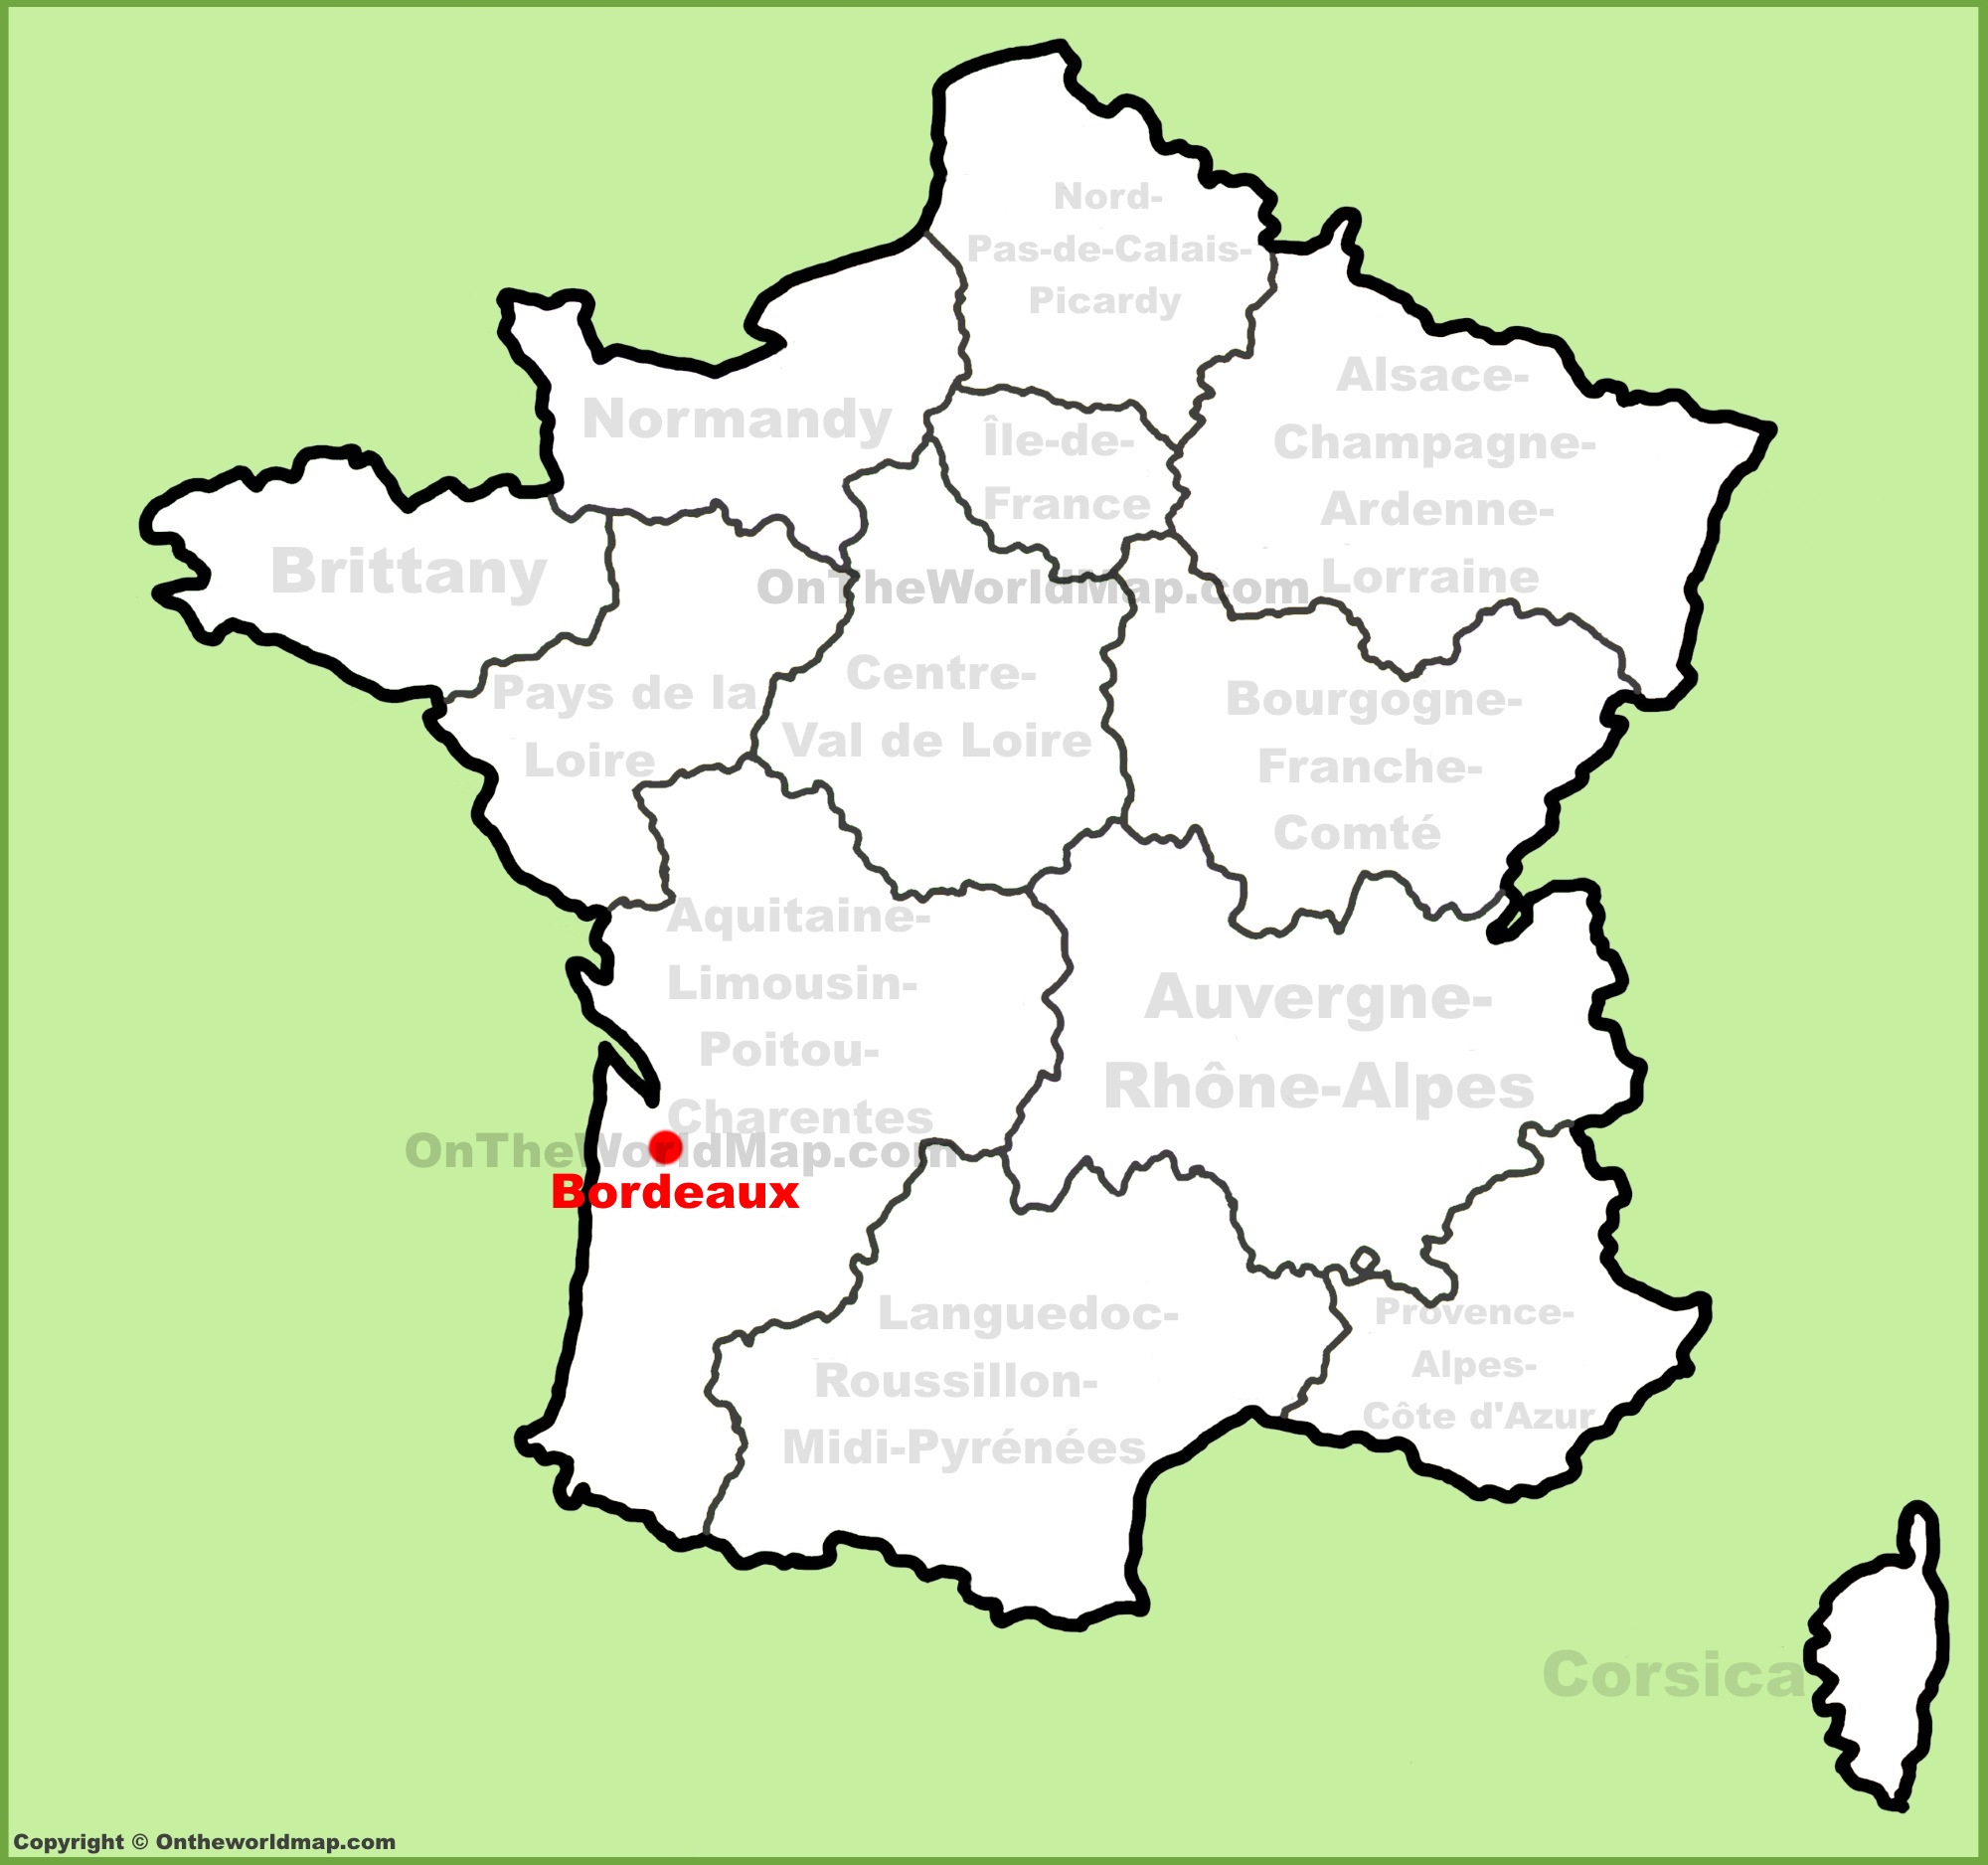 Bordeaux location on the France map